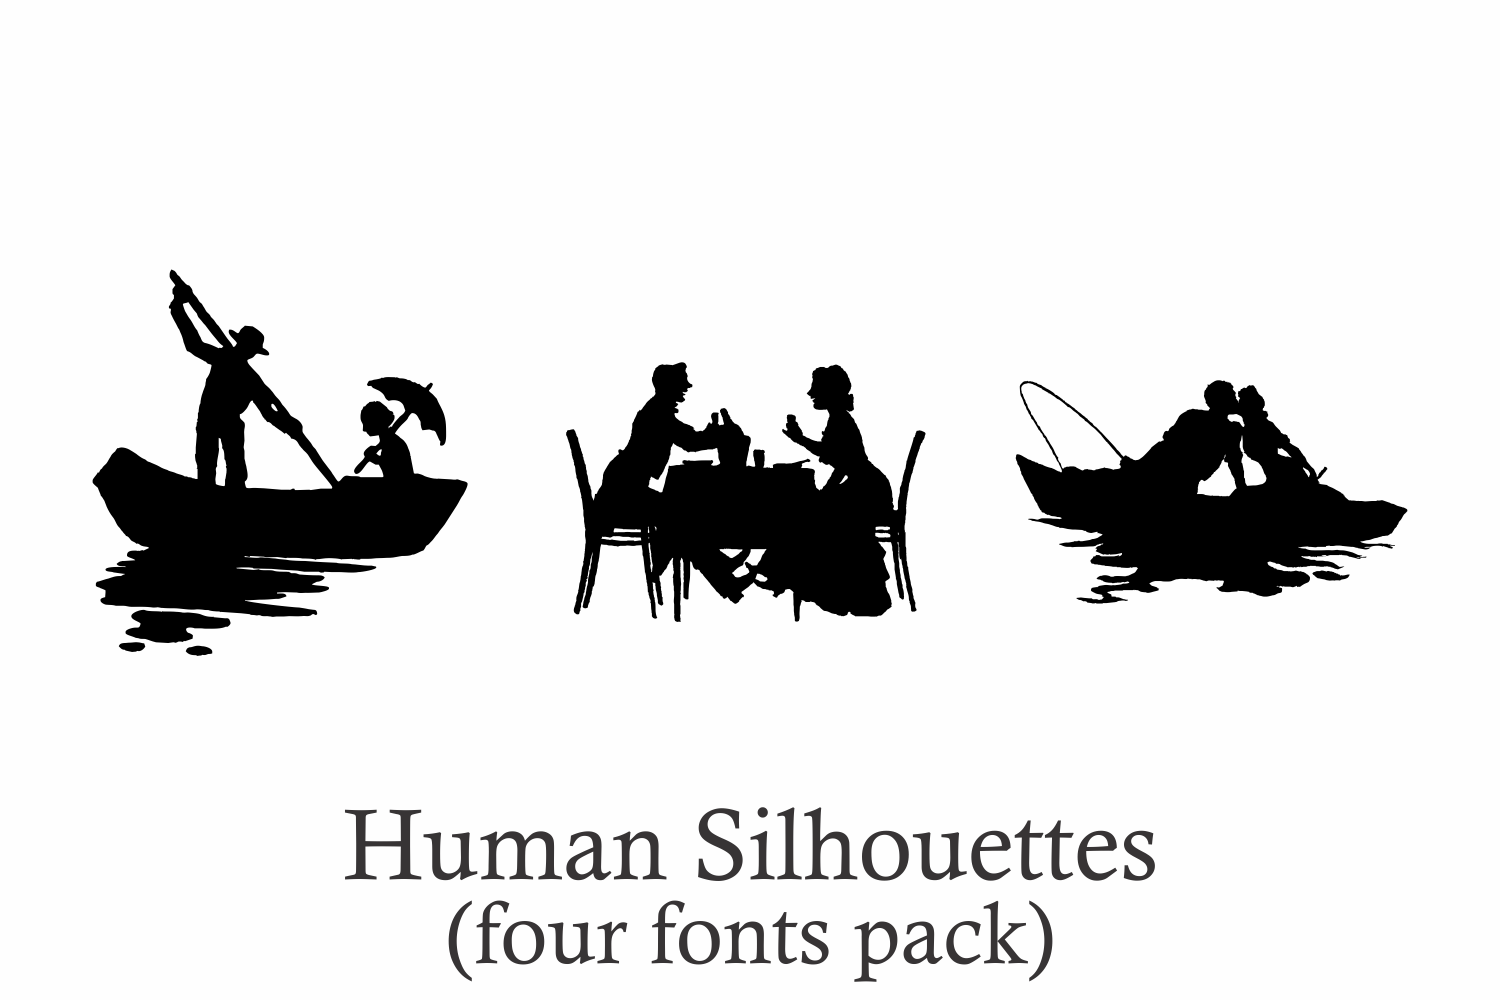 Human Silhouettes Pack - 4 Fonts example image 6